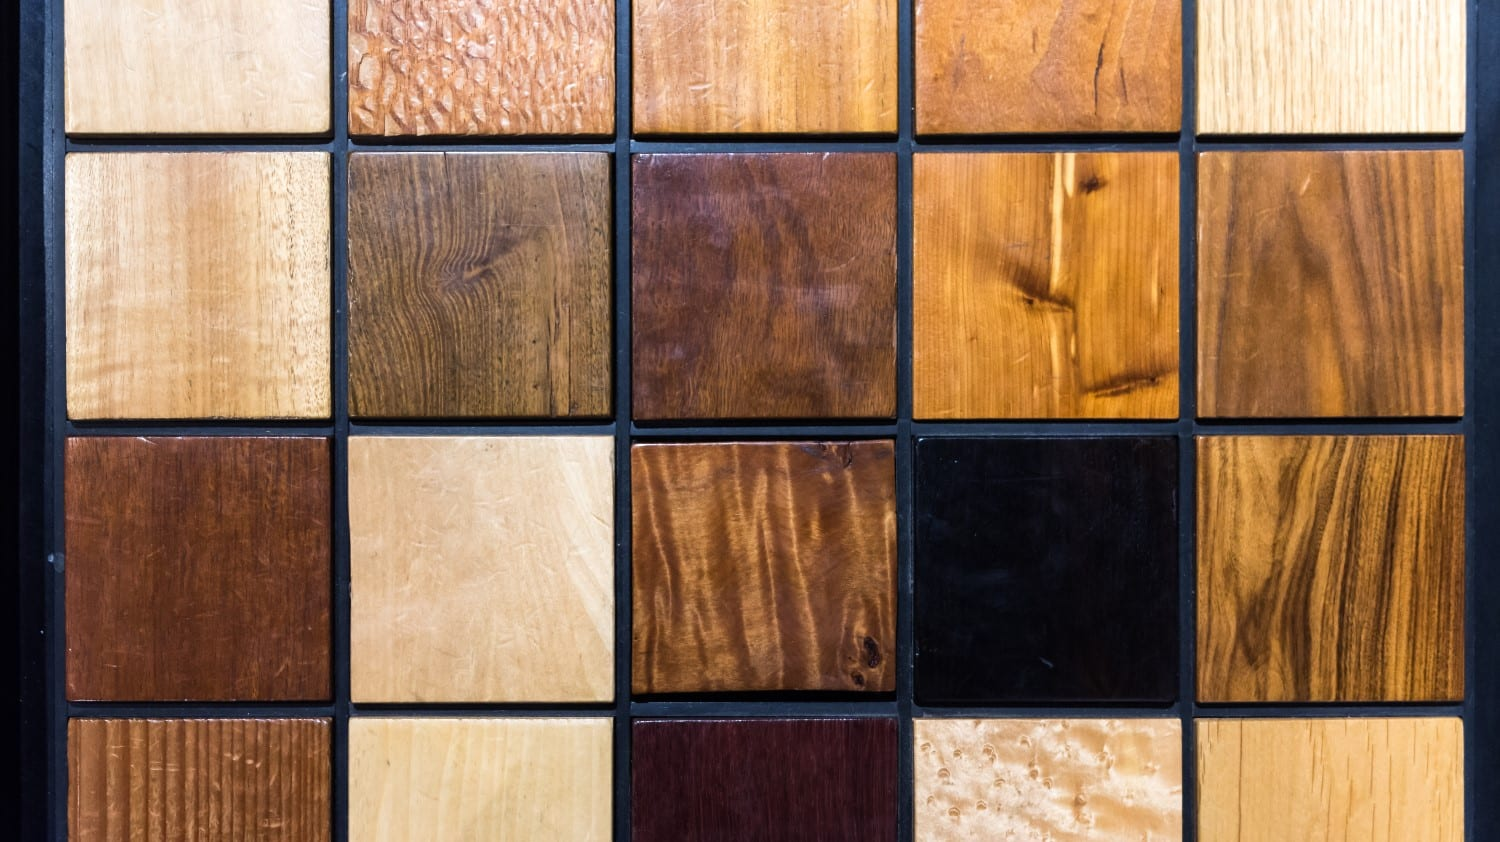 How Difficult Is Color Matching Lumber?